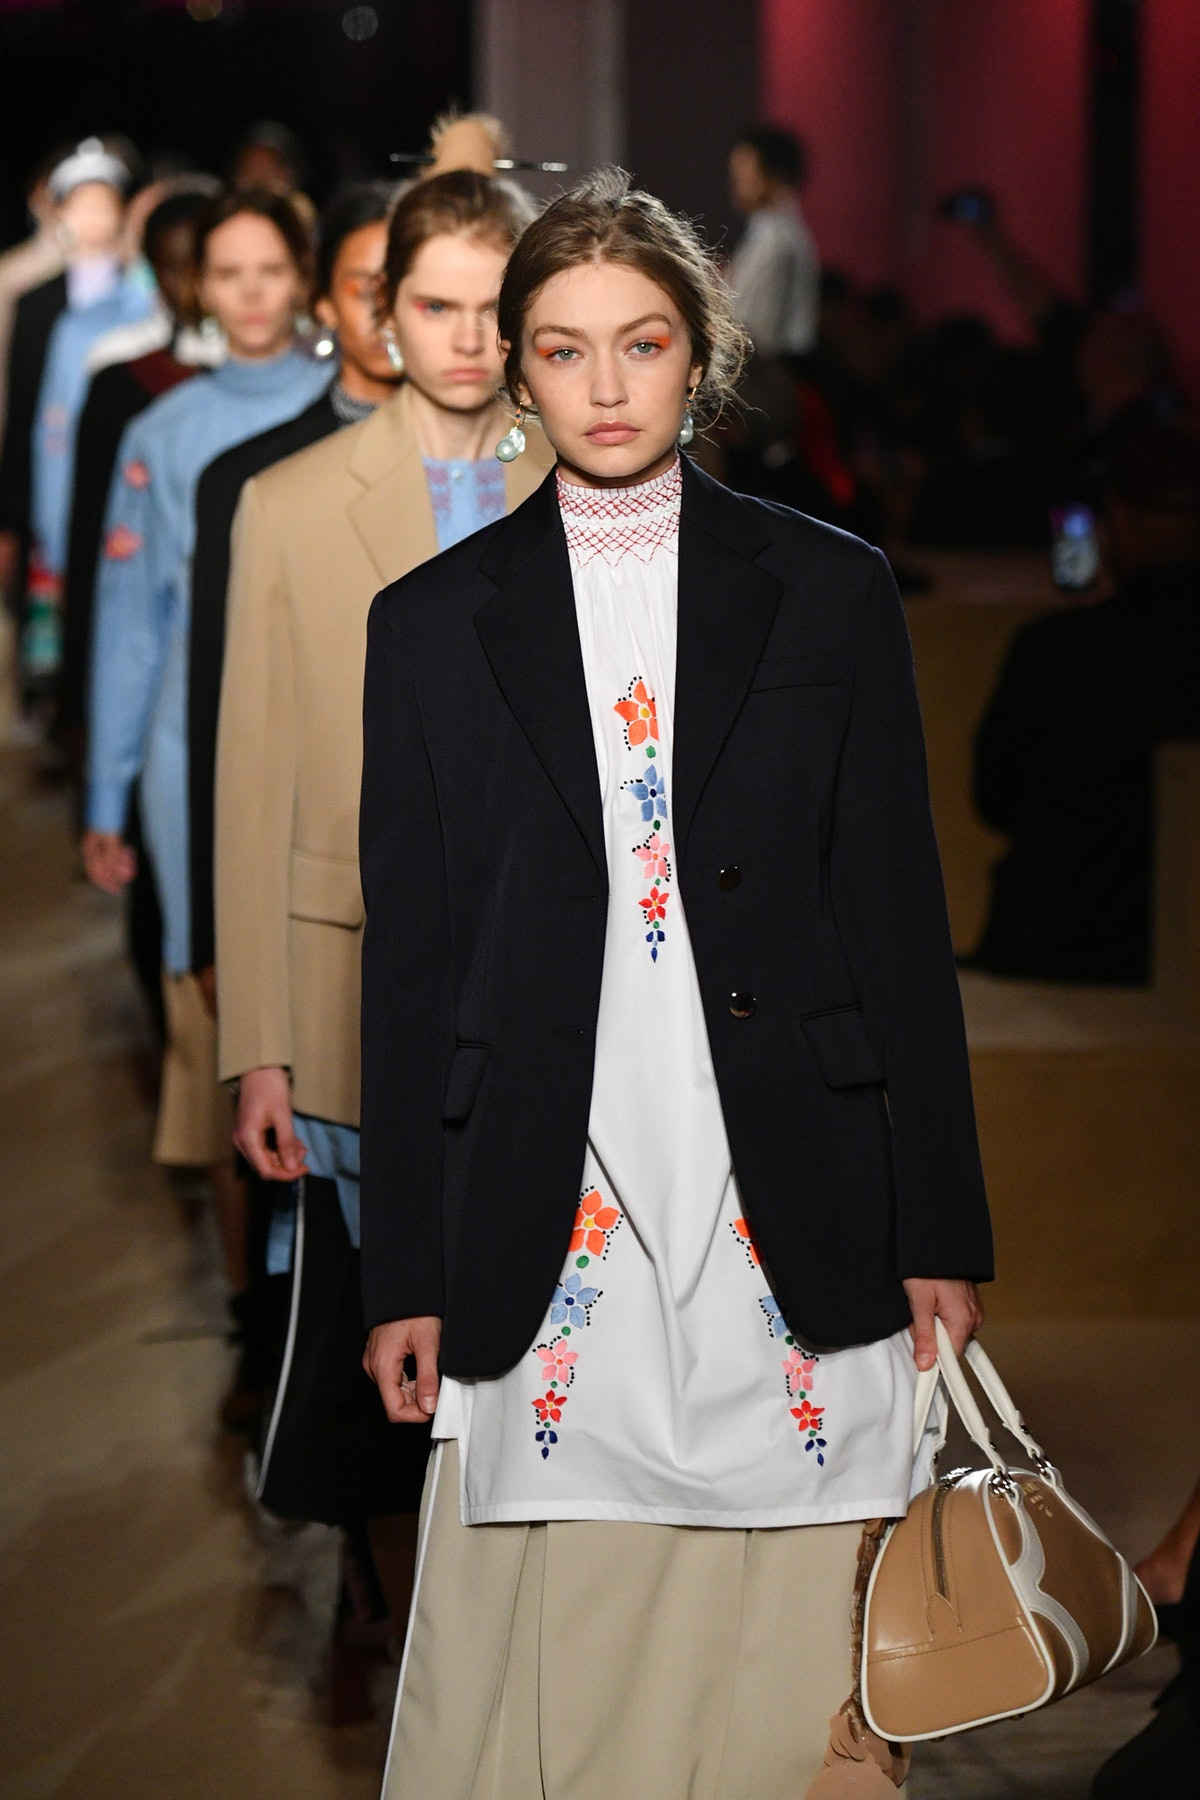 The Prada Group's New Fur-Free Policy Will Go Into Effect For Its Spring/Summer 2020 Collections